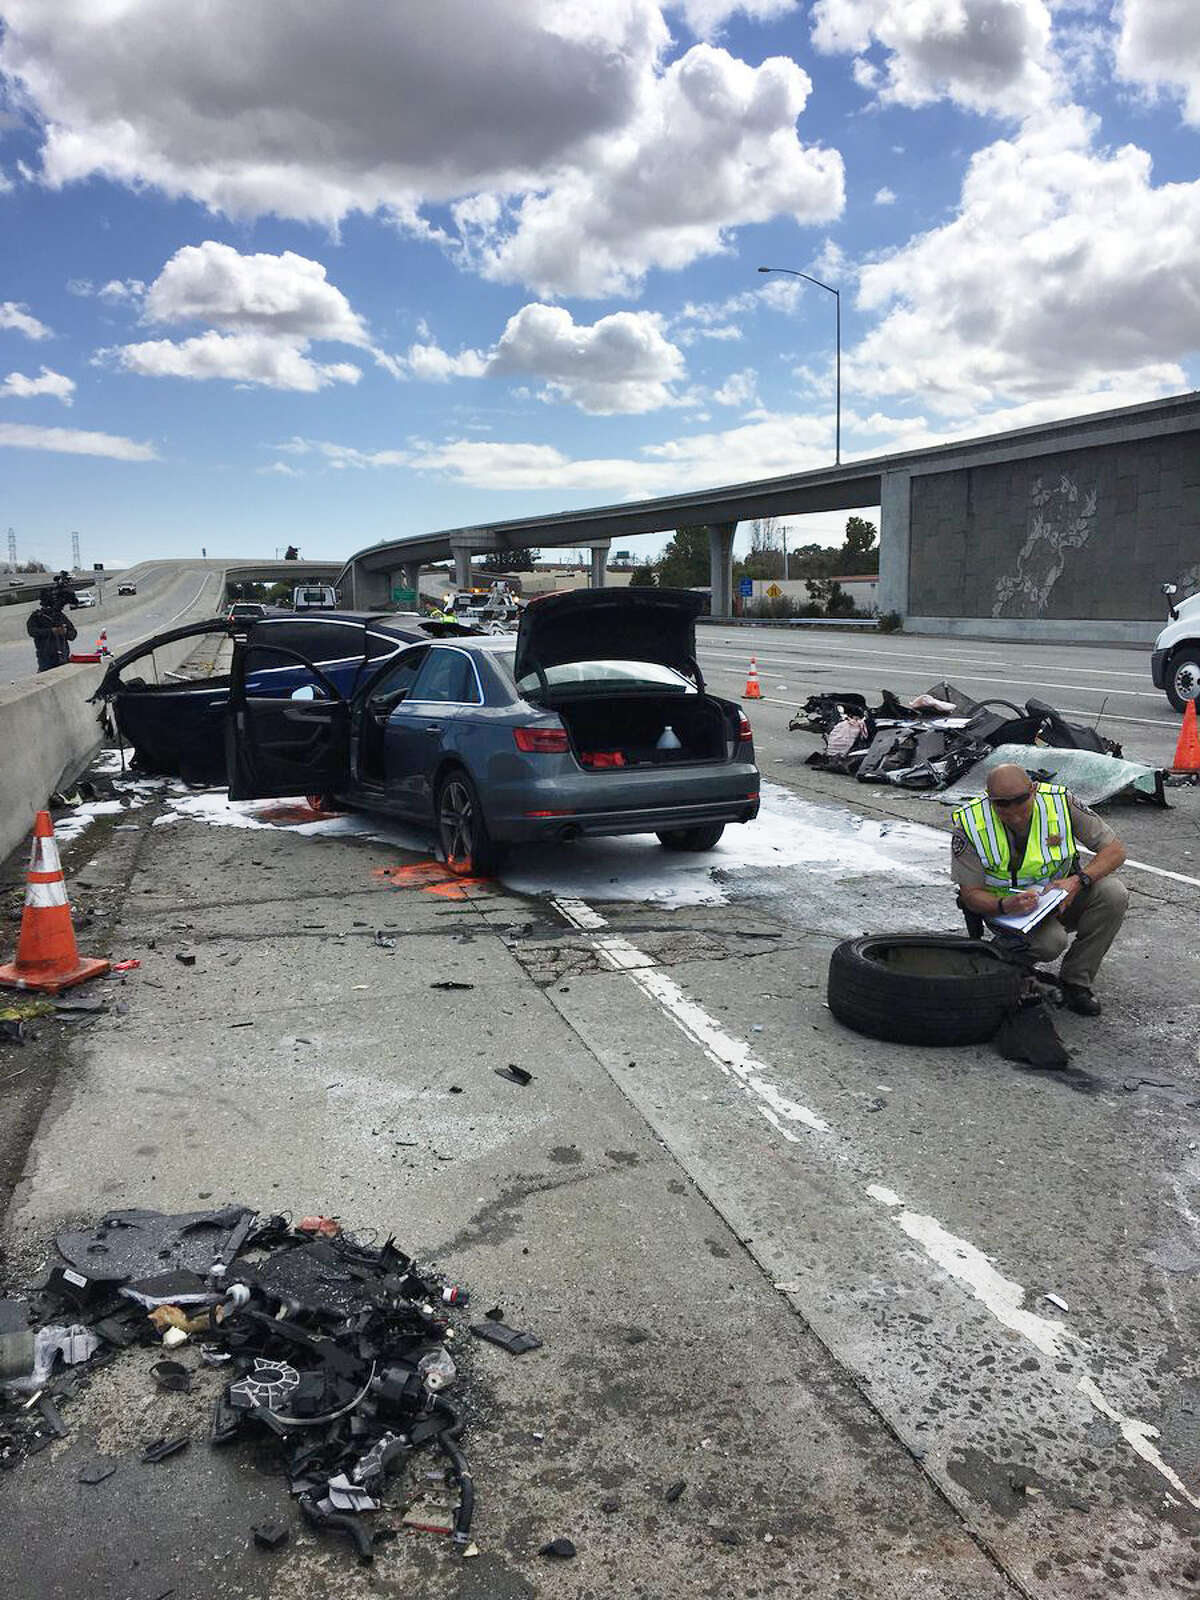 A Tesla Model S was driving southbound on Highway 101 at freeway speeds near Highway 85, the CHP said, when it collided with a barrier separating the carpool lanes on both roads and caught fire.